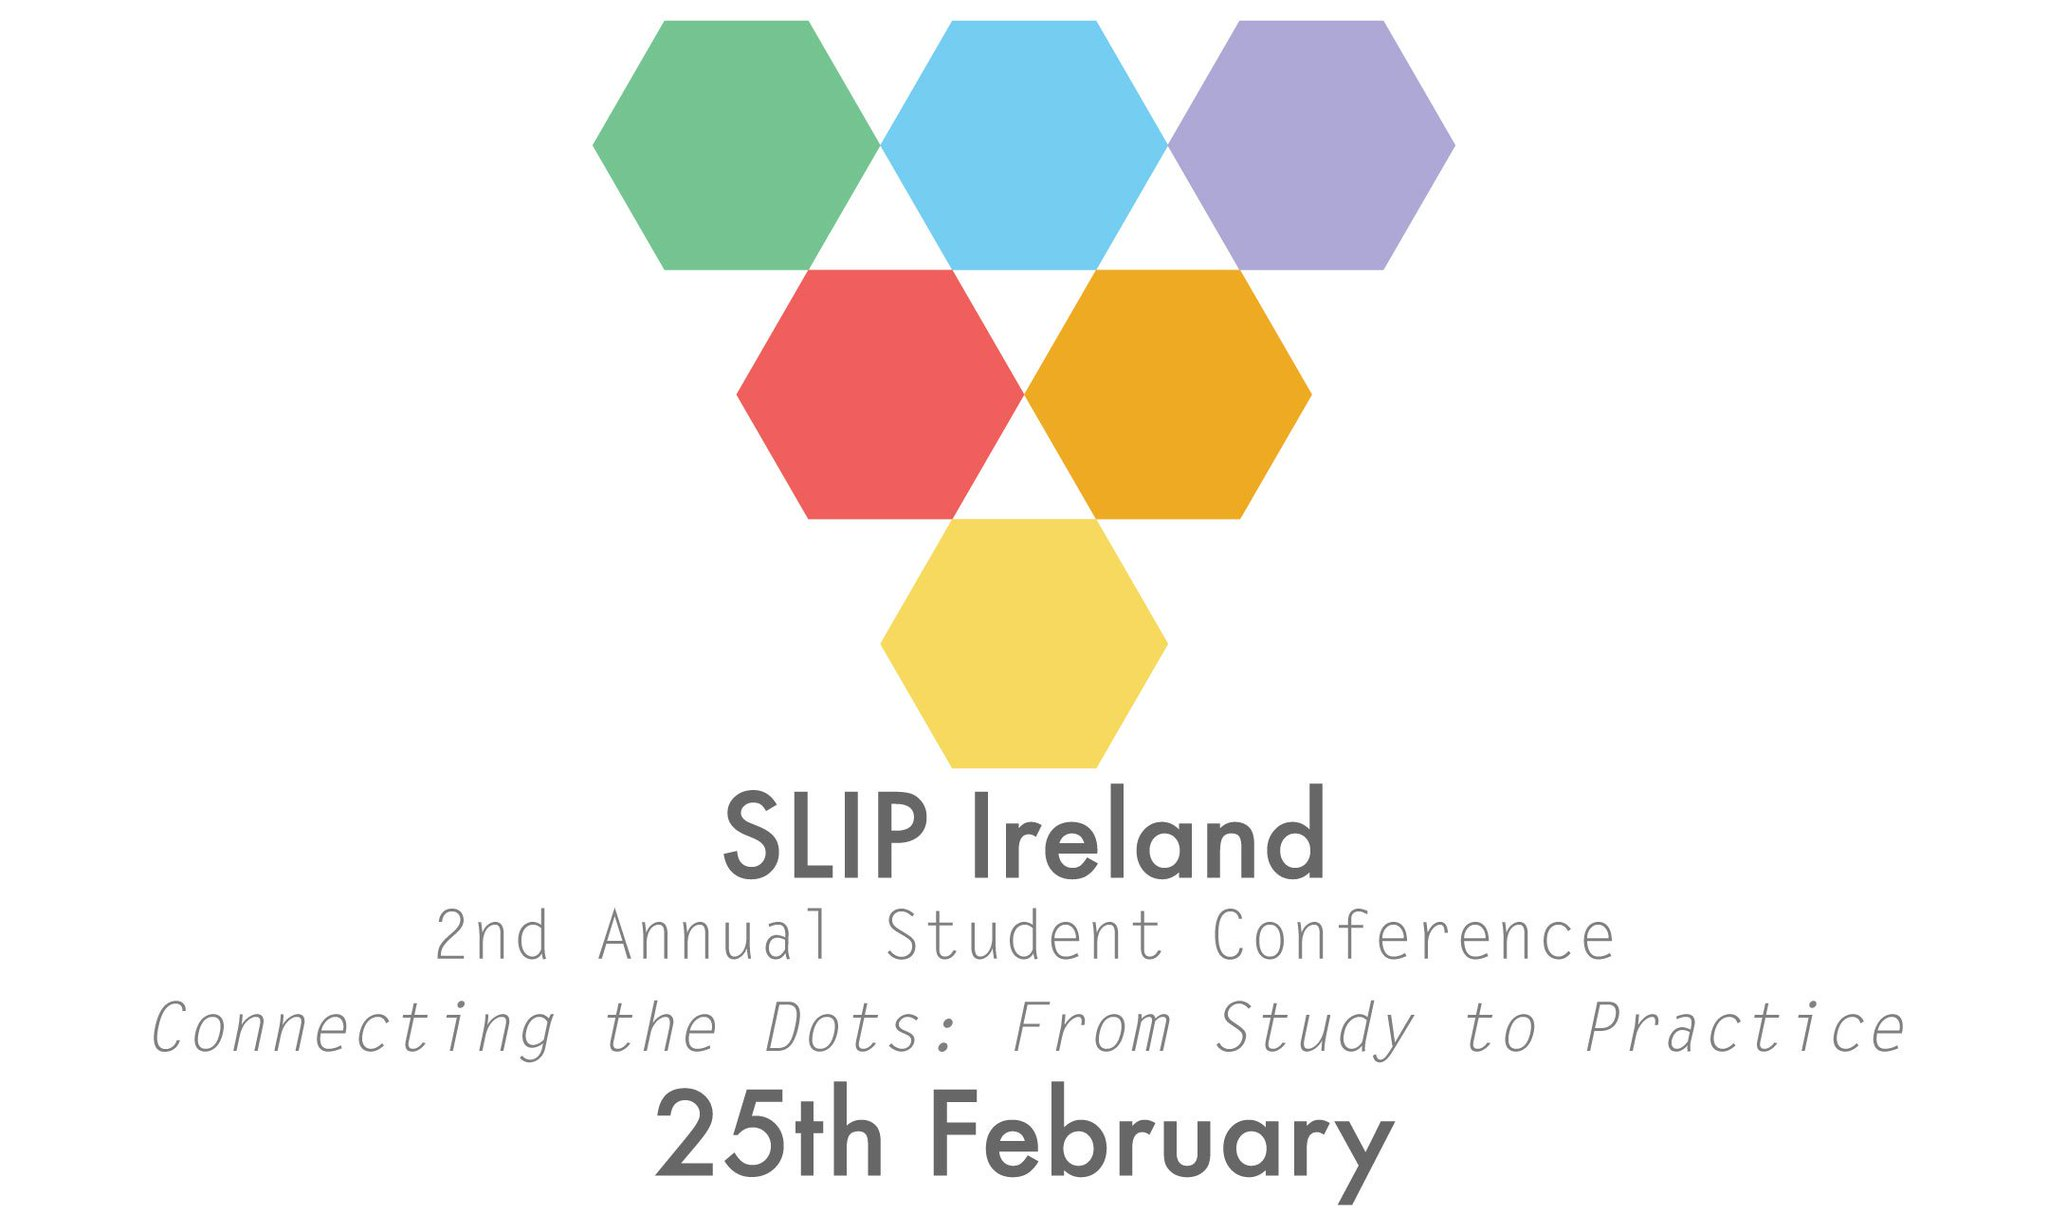 There are only ten tickets left to #SLIP2017 😮! Register on Eventbrite now to register for your free ticket https://t.co/ItdBz2CxuM https://t.co/QnVE79tUX3